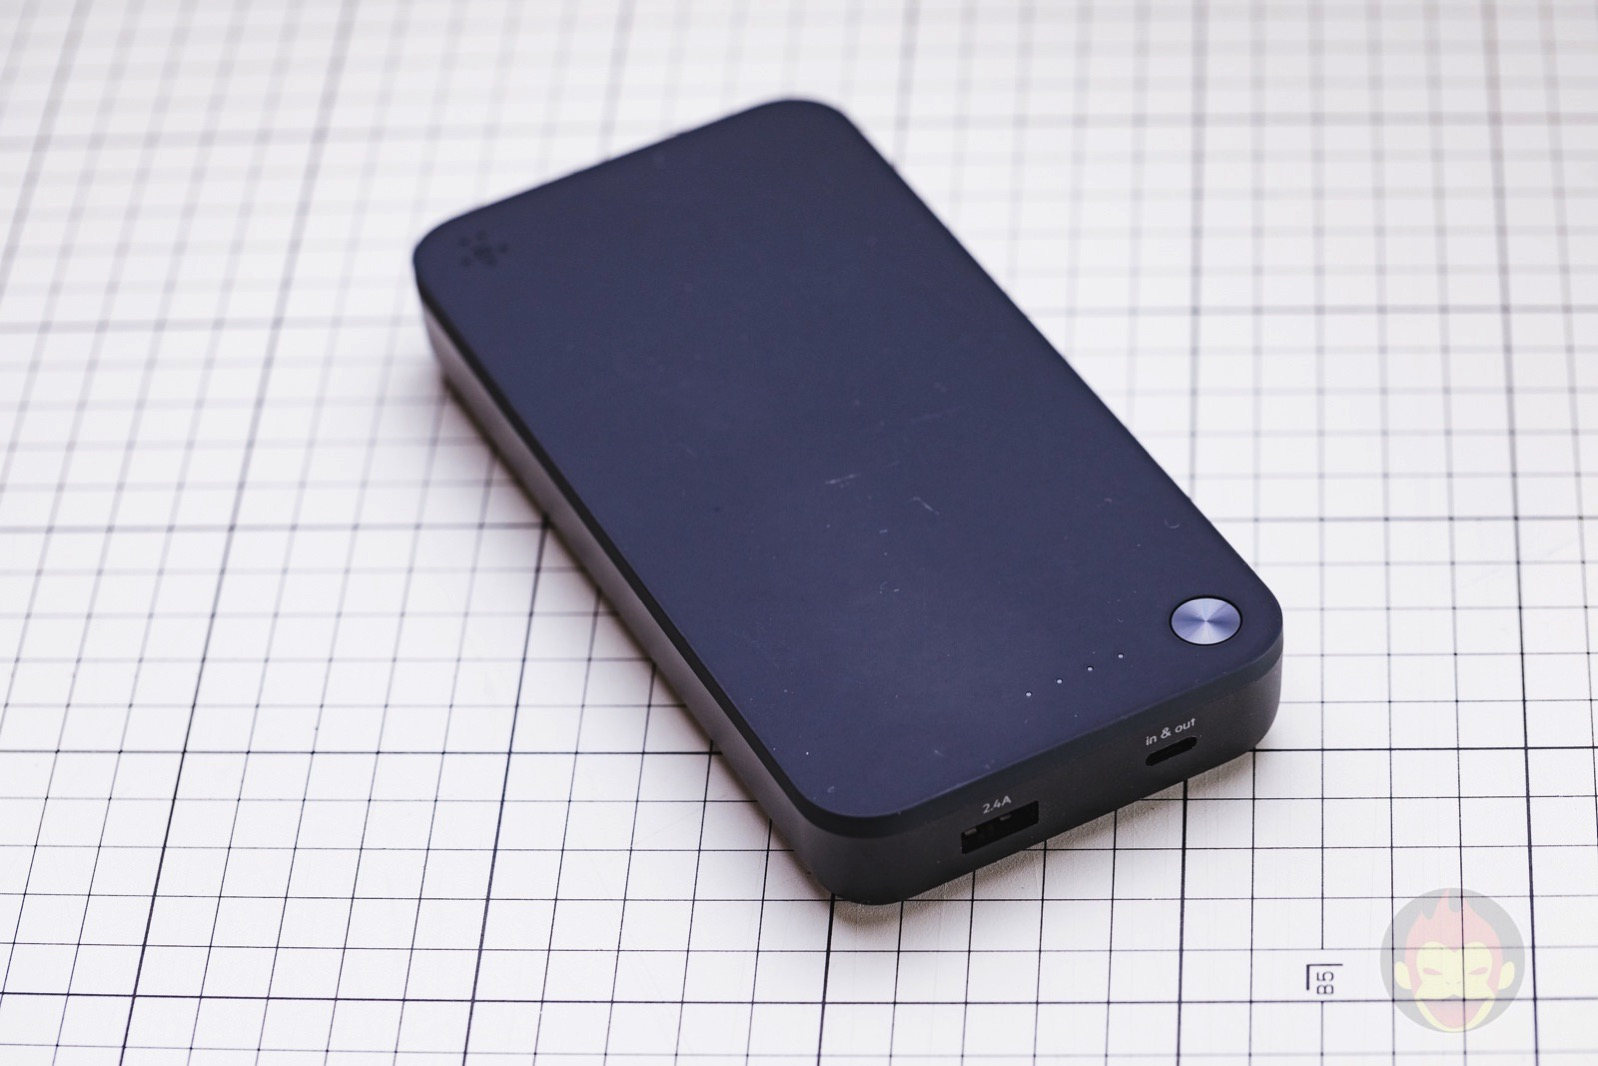 Belkin Boost Charge Mobile Battery 20100mAh Review 01